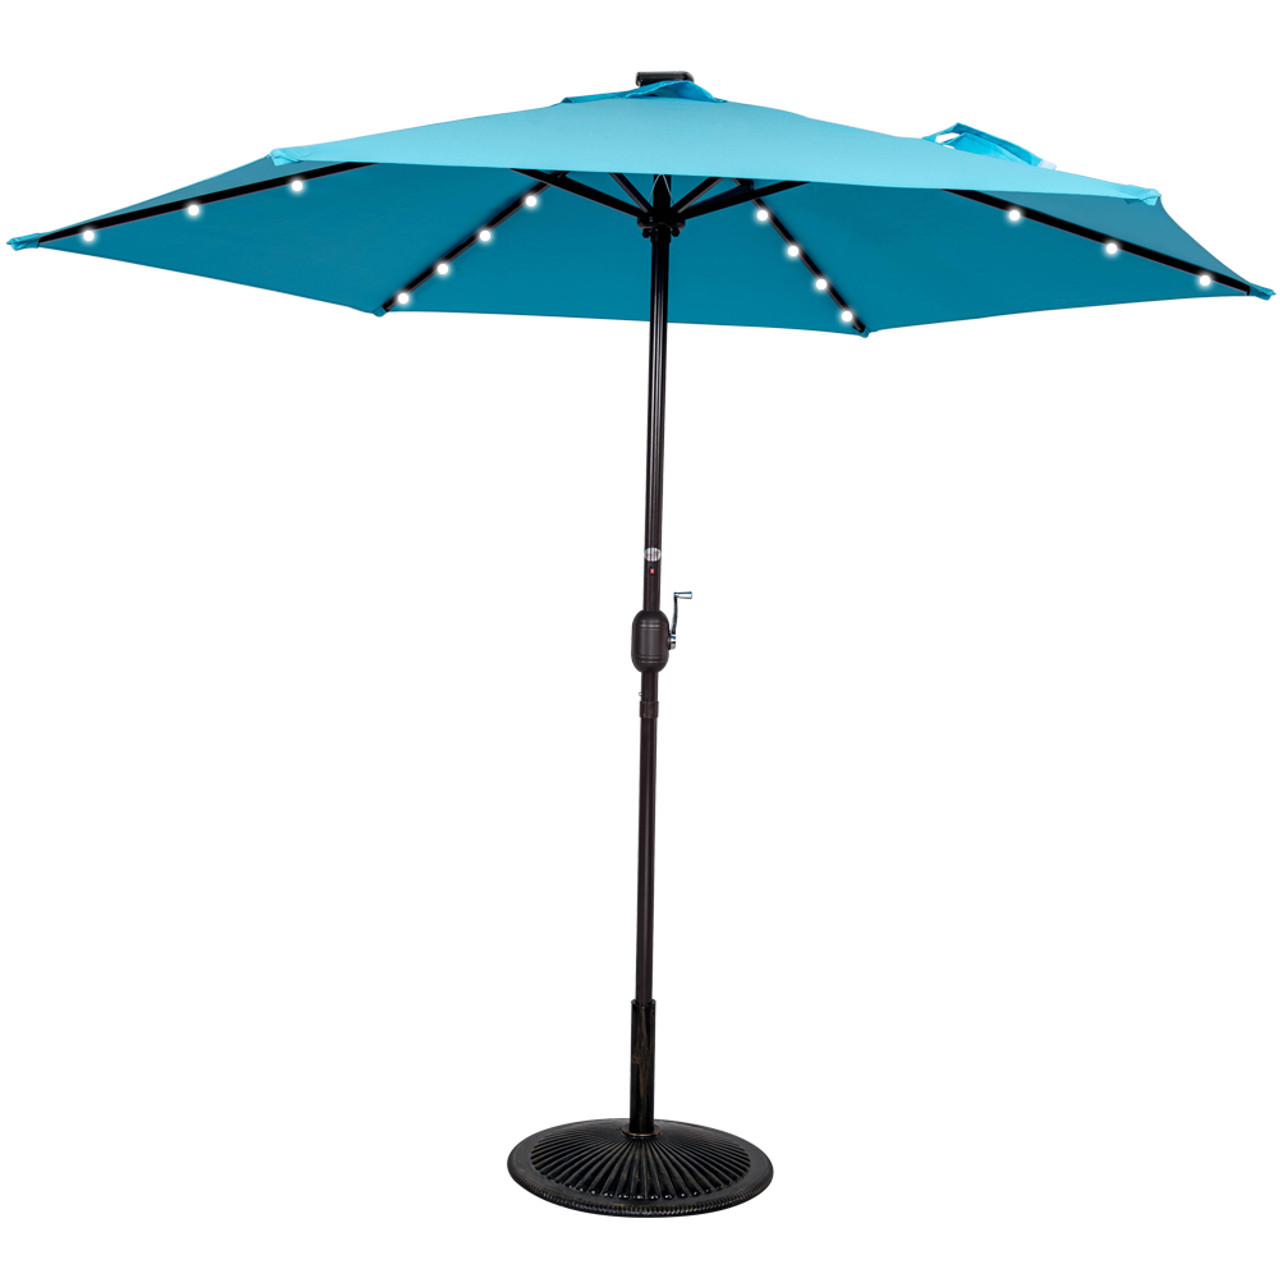 19 Walmart Patio Market Umbrellas Findingwinter Com